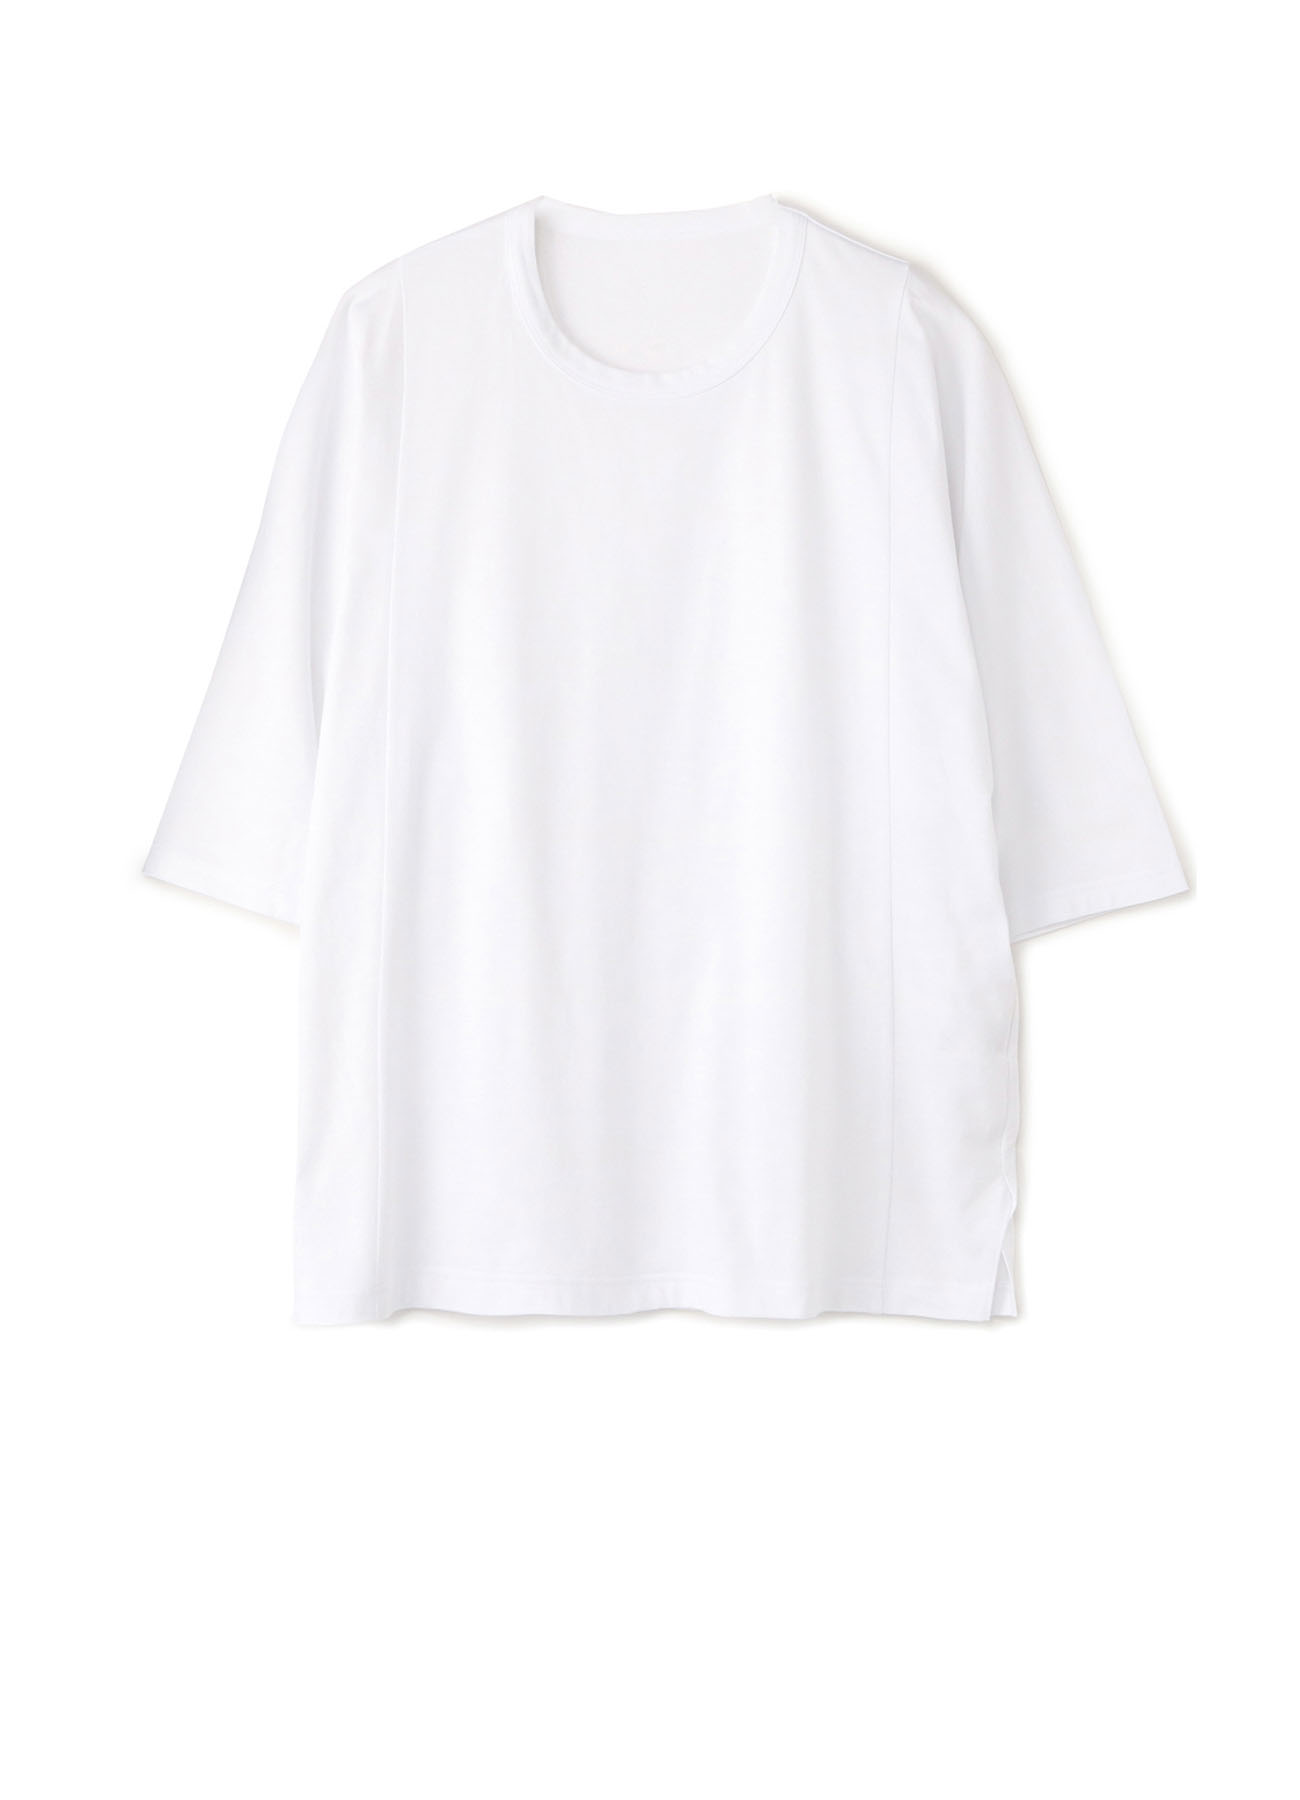 30/Cotton Jersey Three-Quarter Sleeves Cut Sew